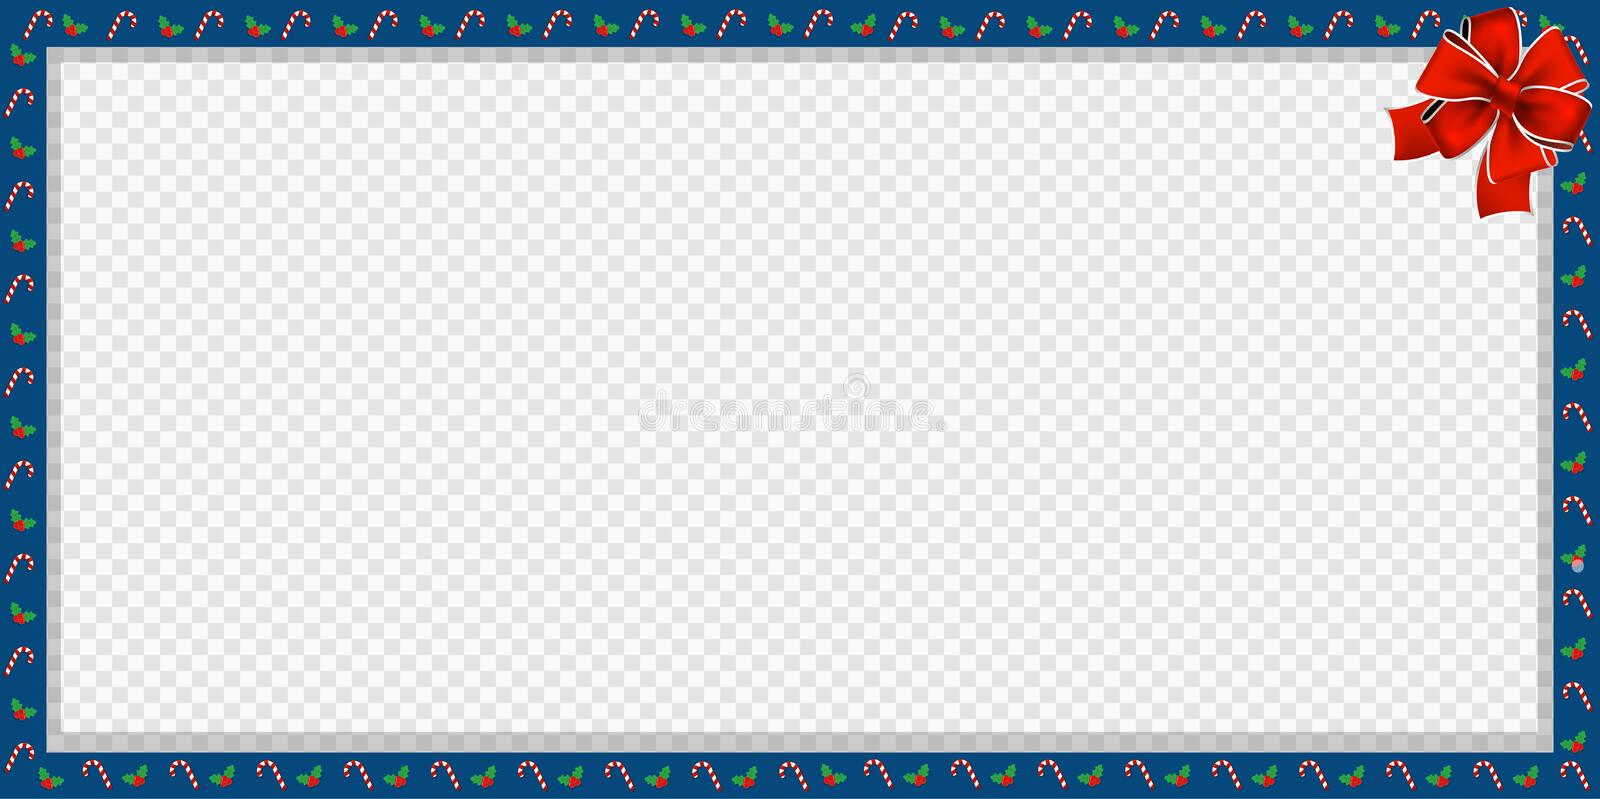 Cute Christmas or new year border with candy cane, berries pattern and red bow isolated vector illustration